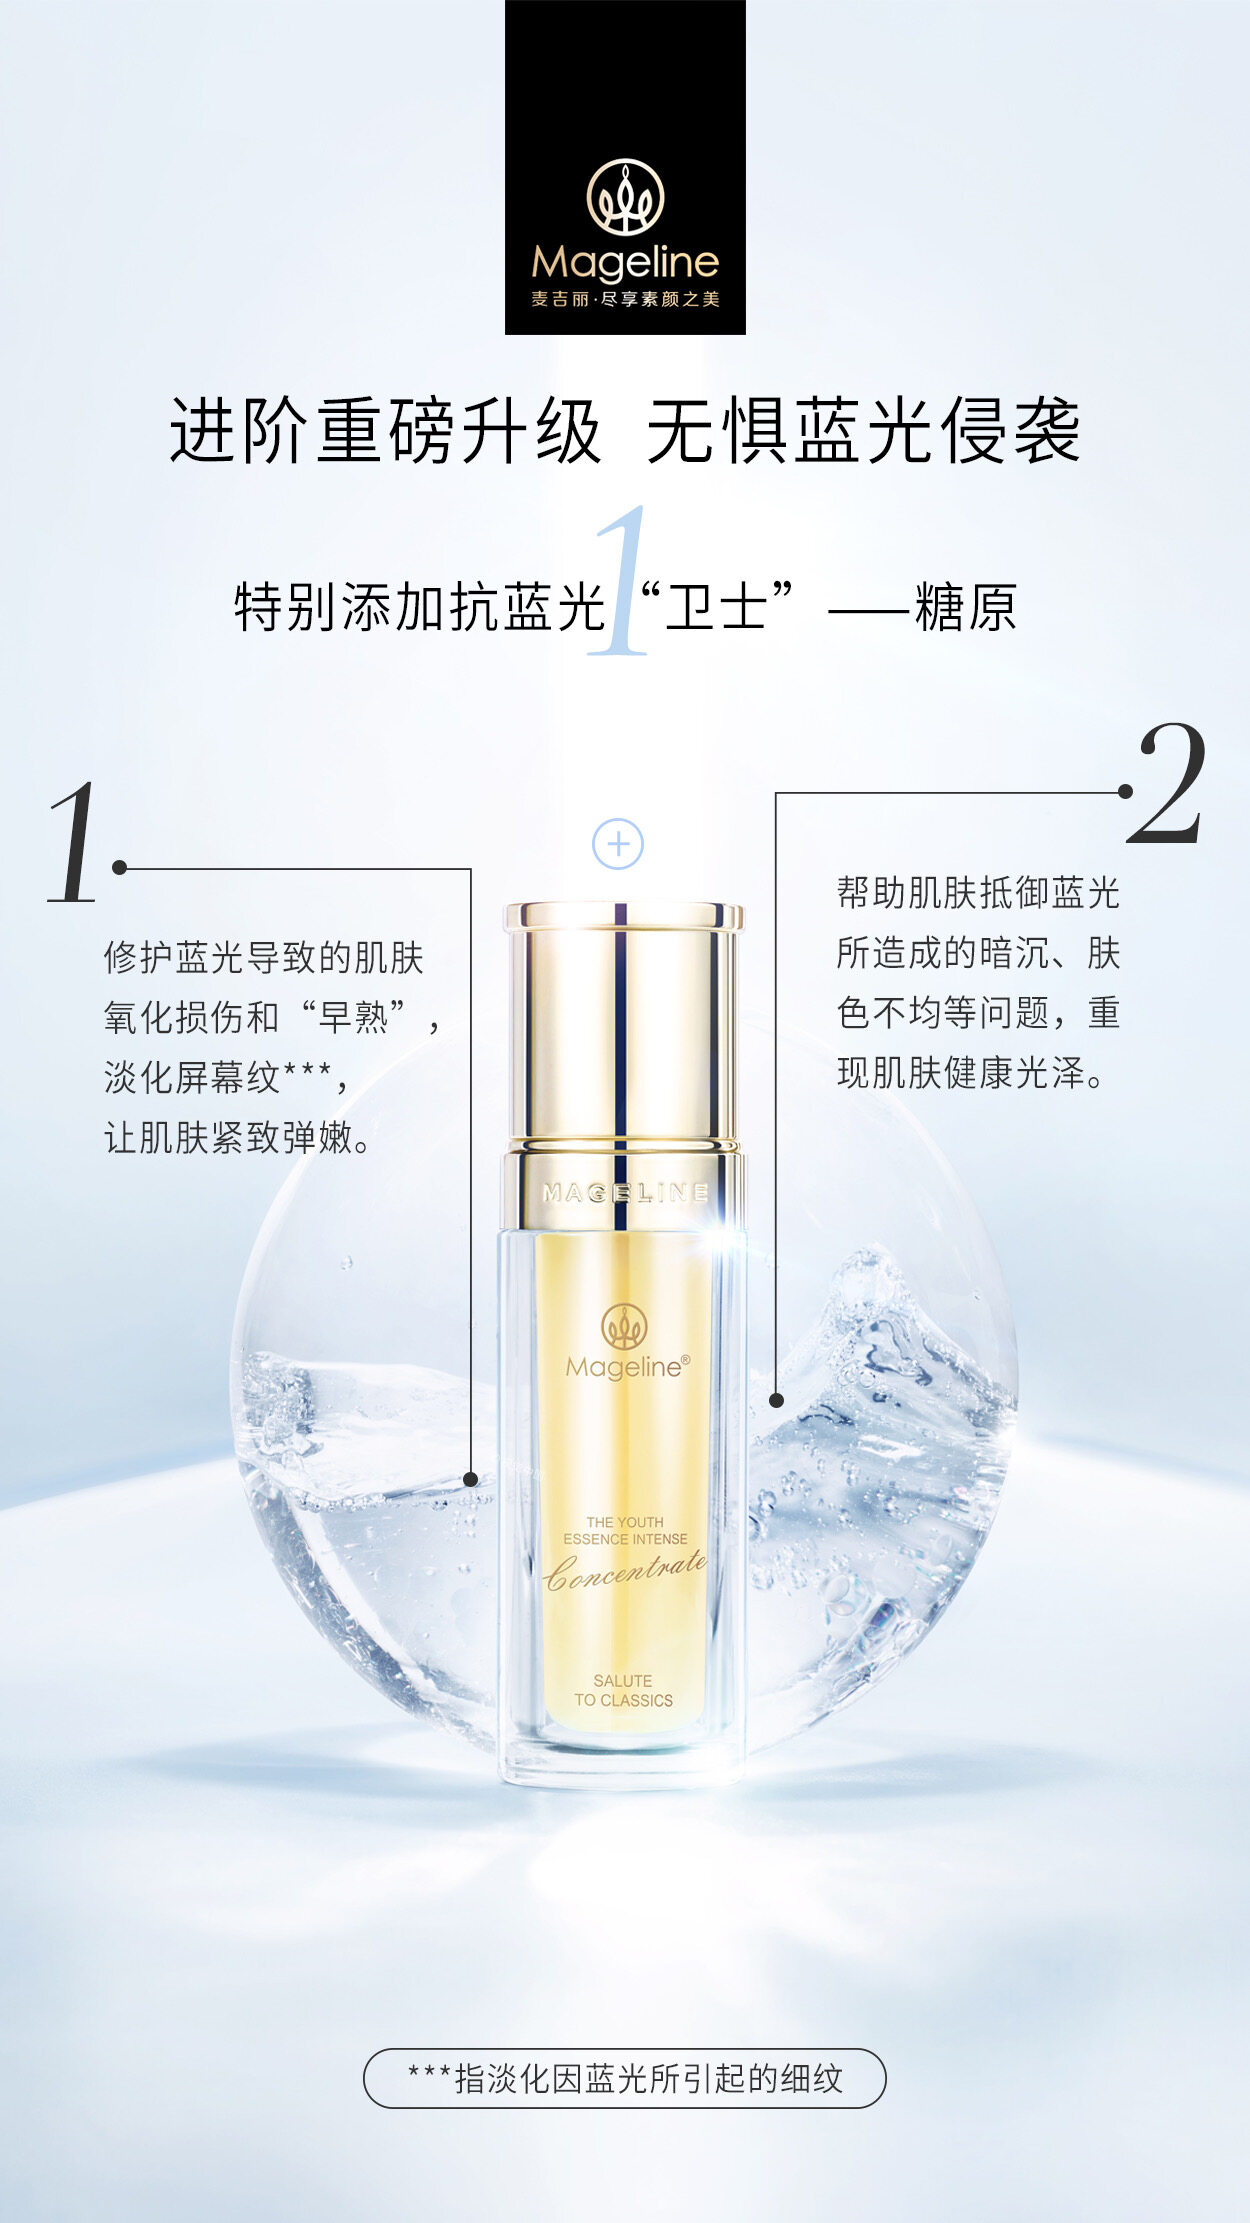 Mageline The Youth Essence Intense Concentrate for Dry & Normal Skin